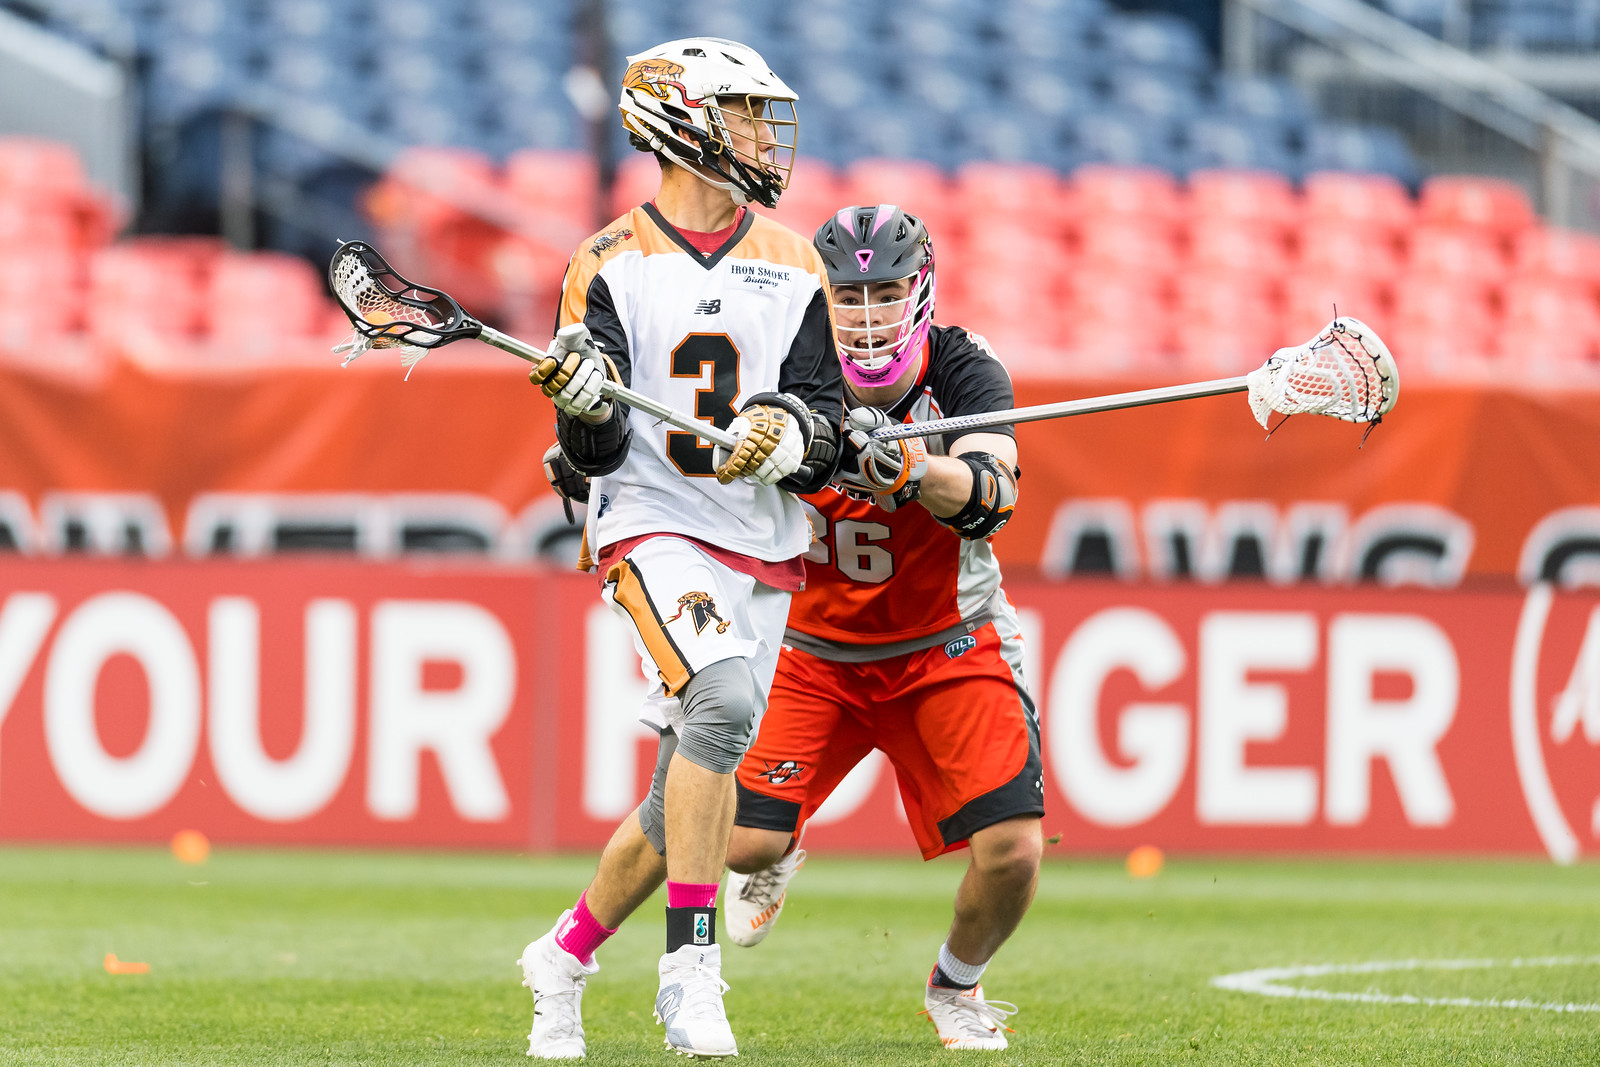 Title: MLL: Rochester Rattlers @ Denver Outlaws